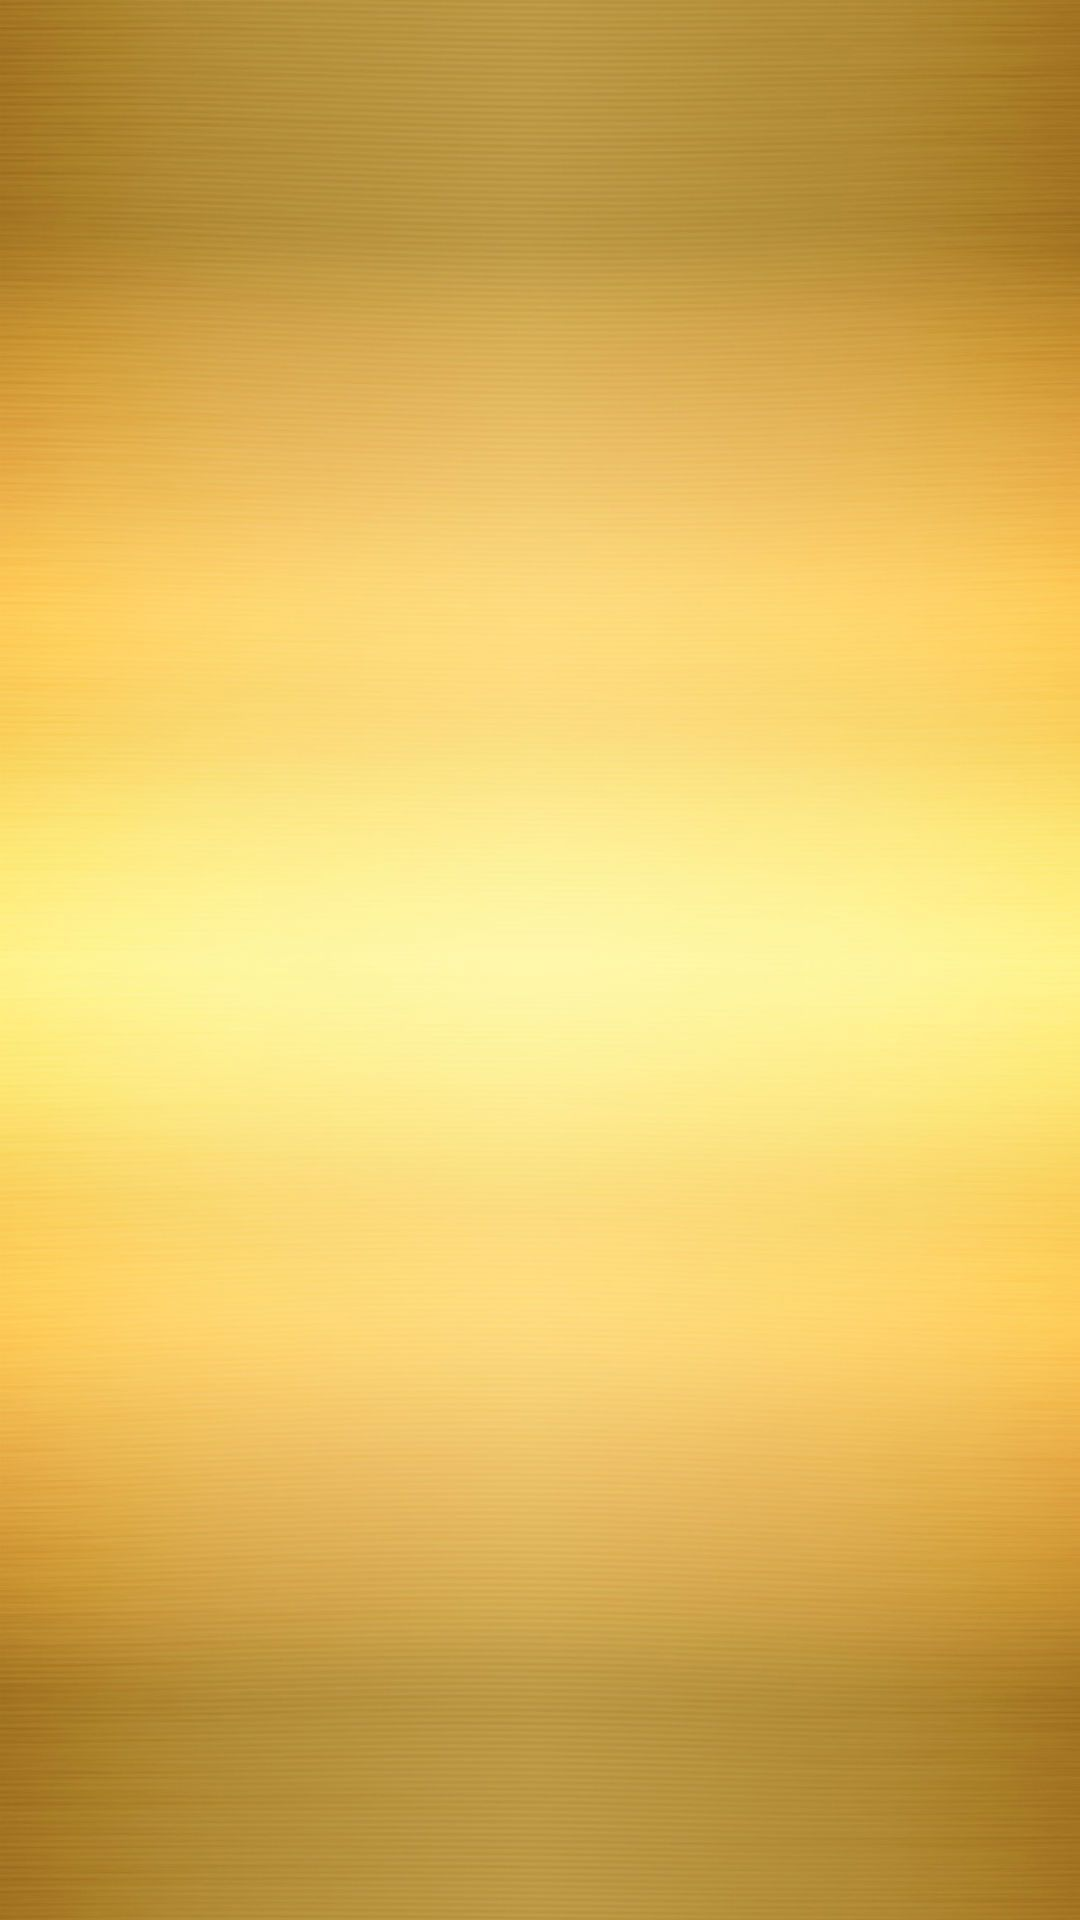 Yellow Ombre Photo Yellow Ombre Photo Wallpaper